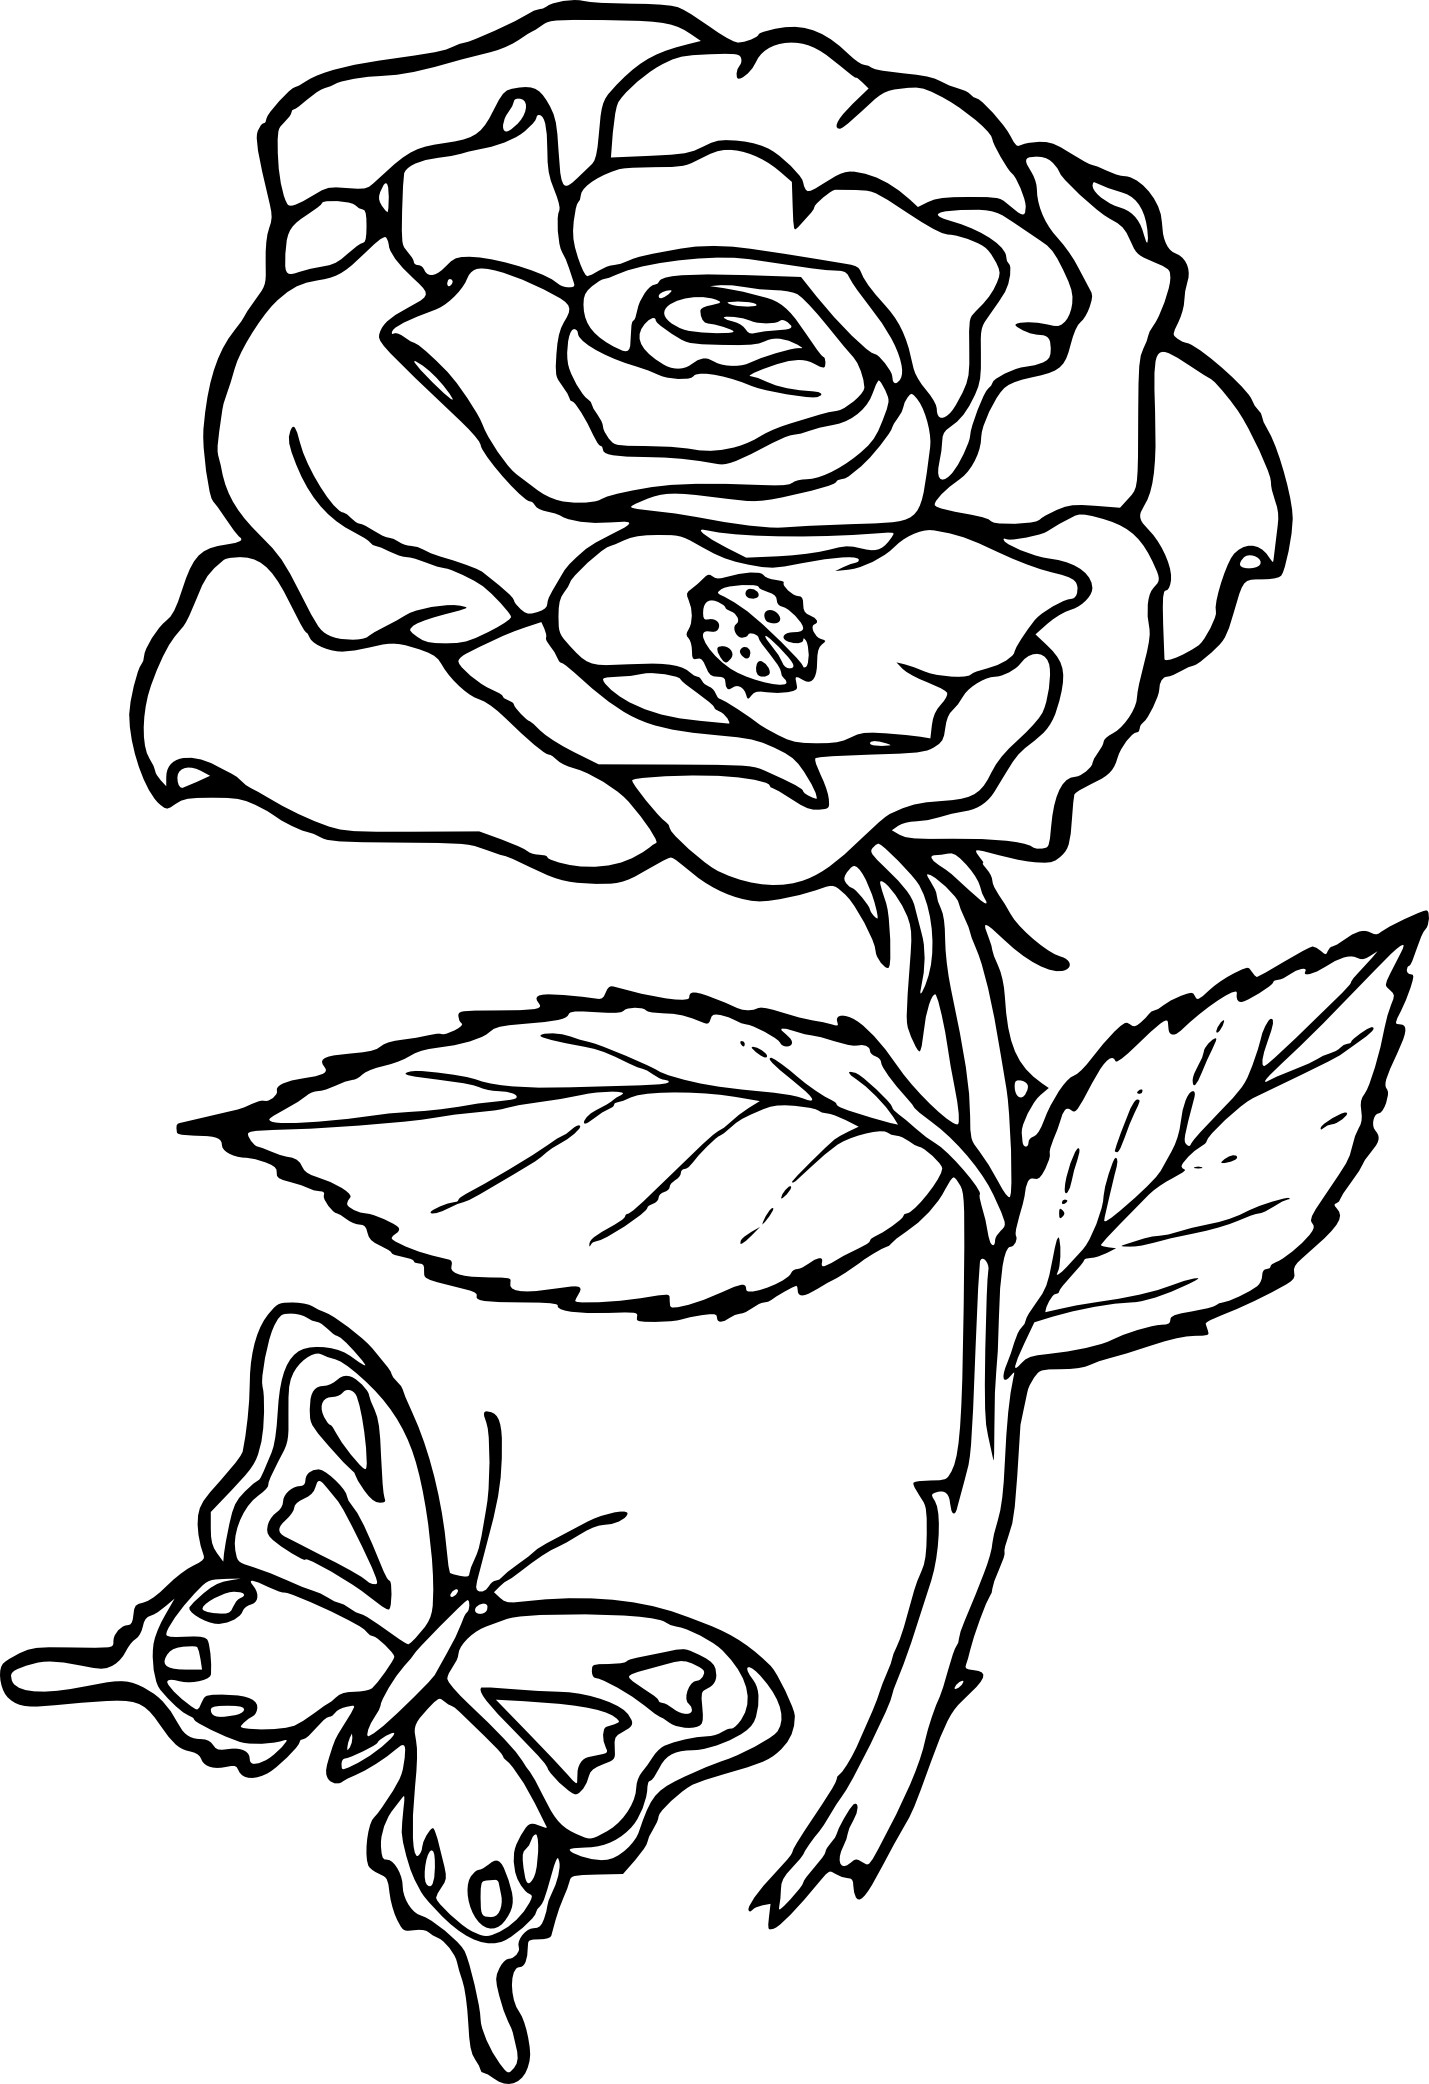 coloriage rose fleur imprimer. Black Bedroom Furniture Sets. Home Design Ideas